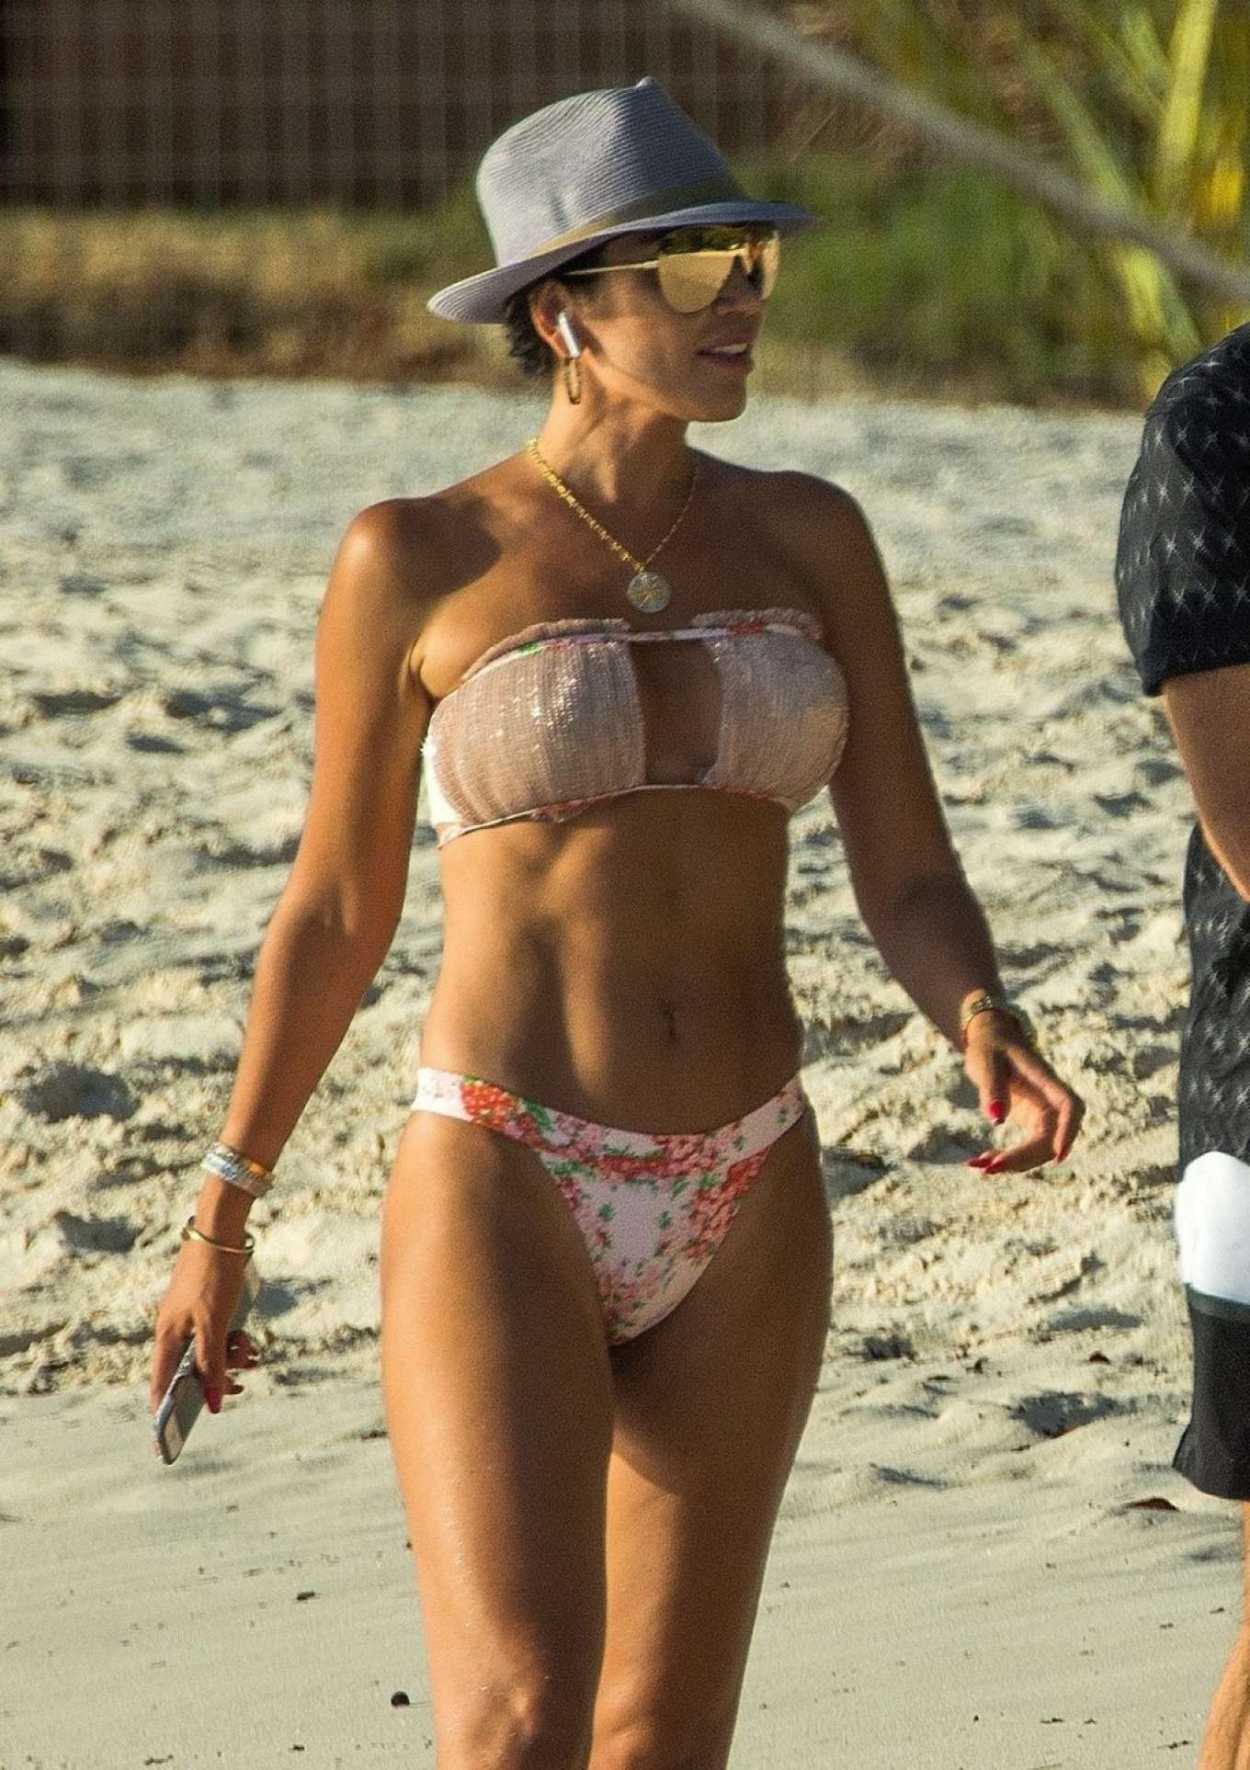 Nigora Bannatyne in Bikini on the Beach in Barbados 12/29